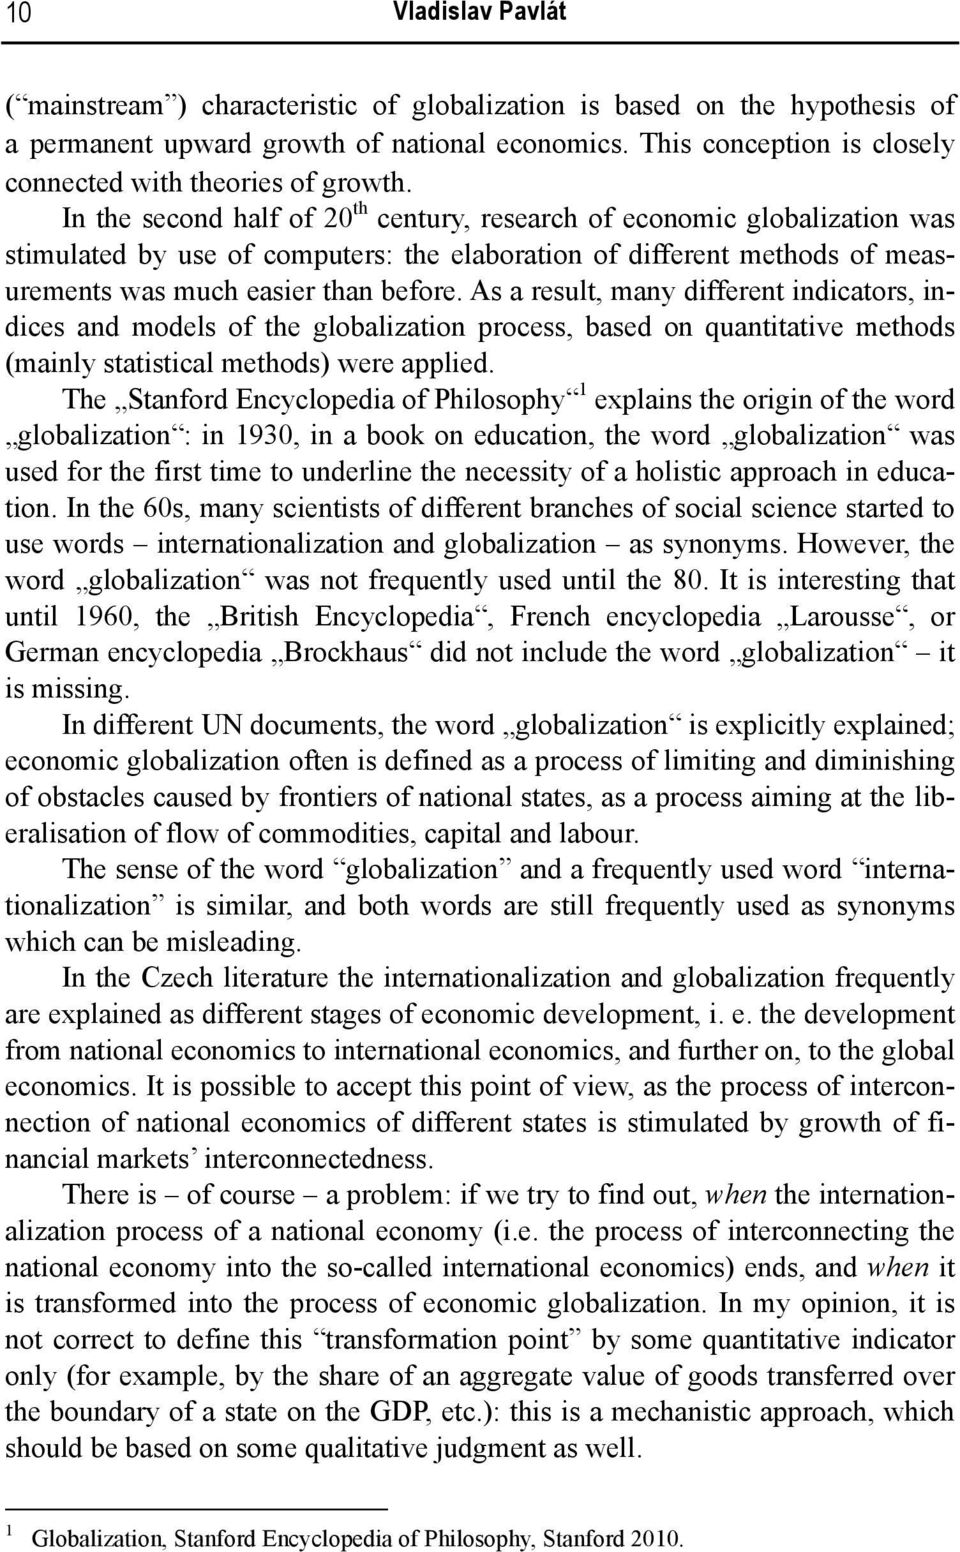 In the second half of 20 th century, research of economic globalization was stimulated by use of computers: the elaboration of different methods of measurements was much easier than before.